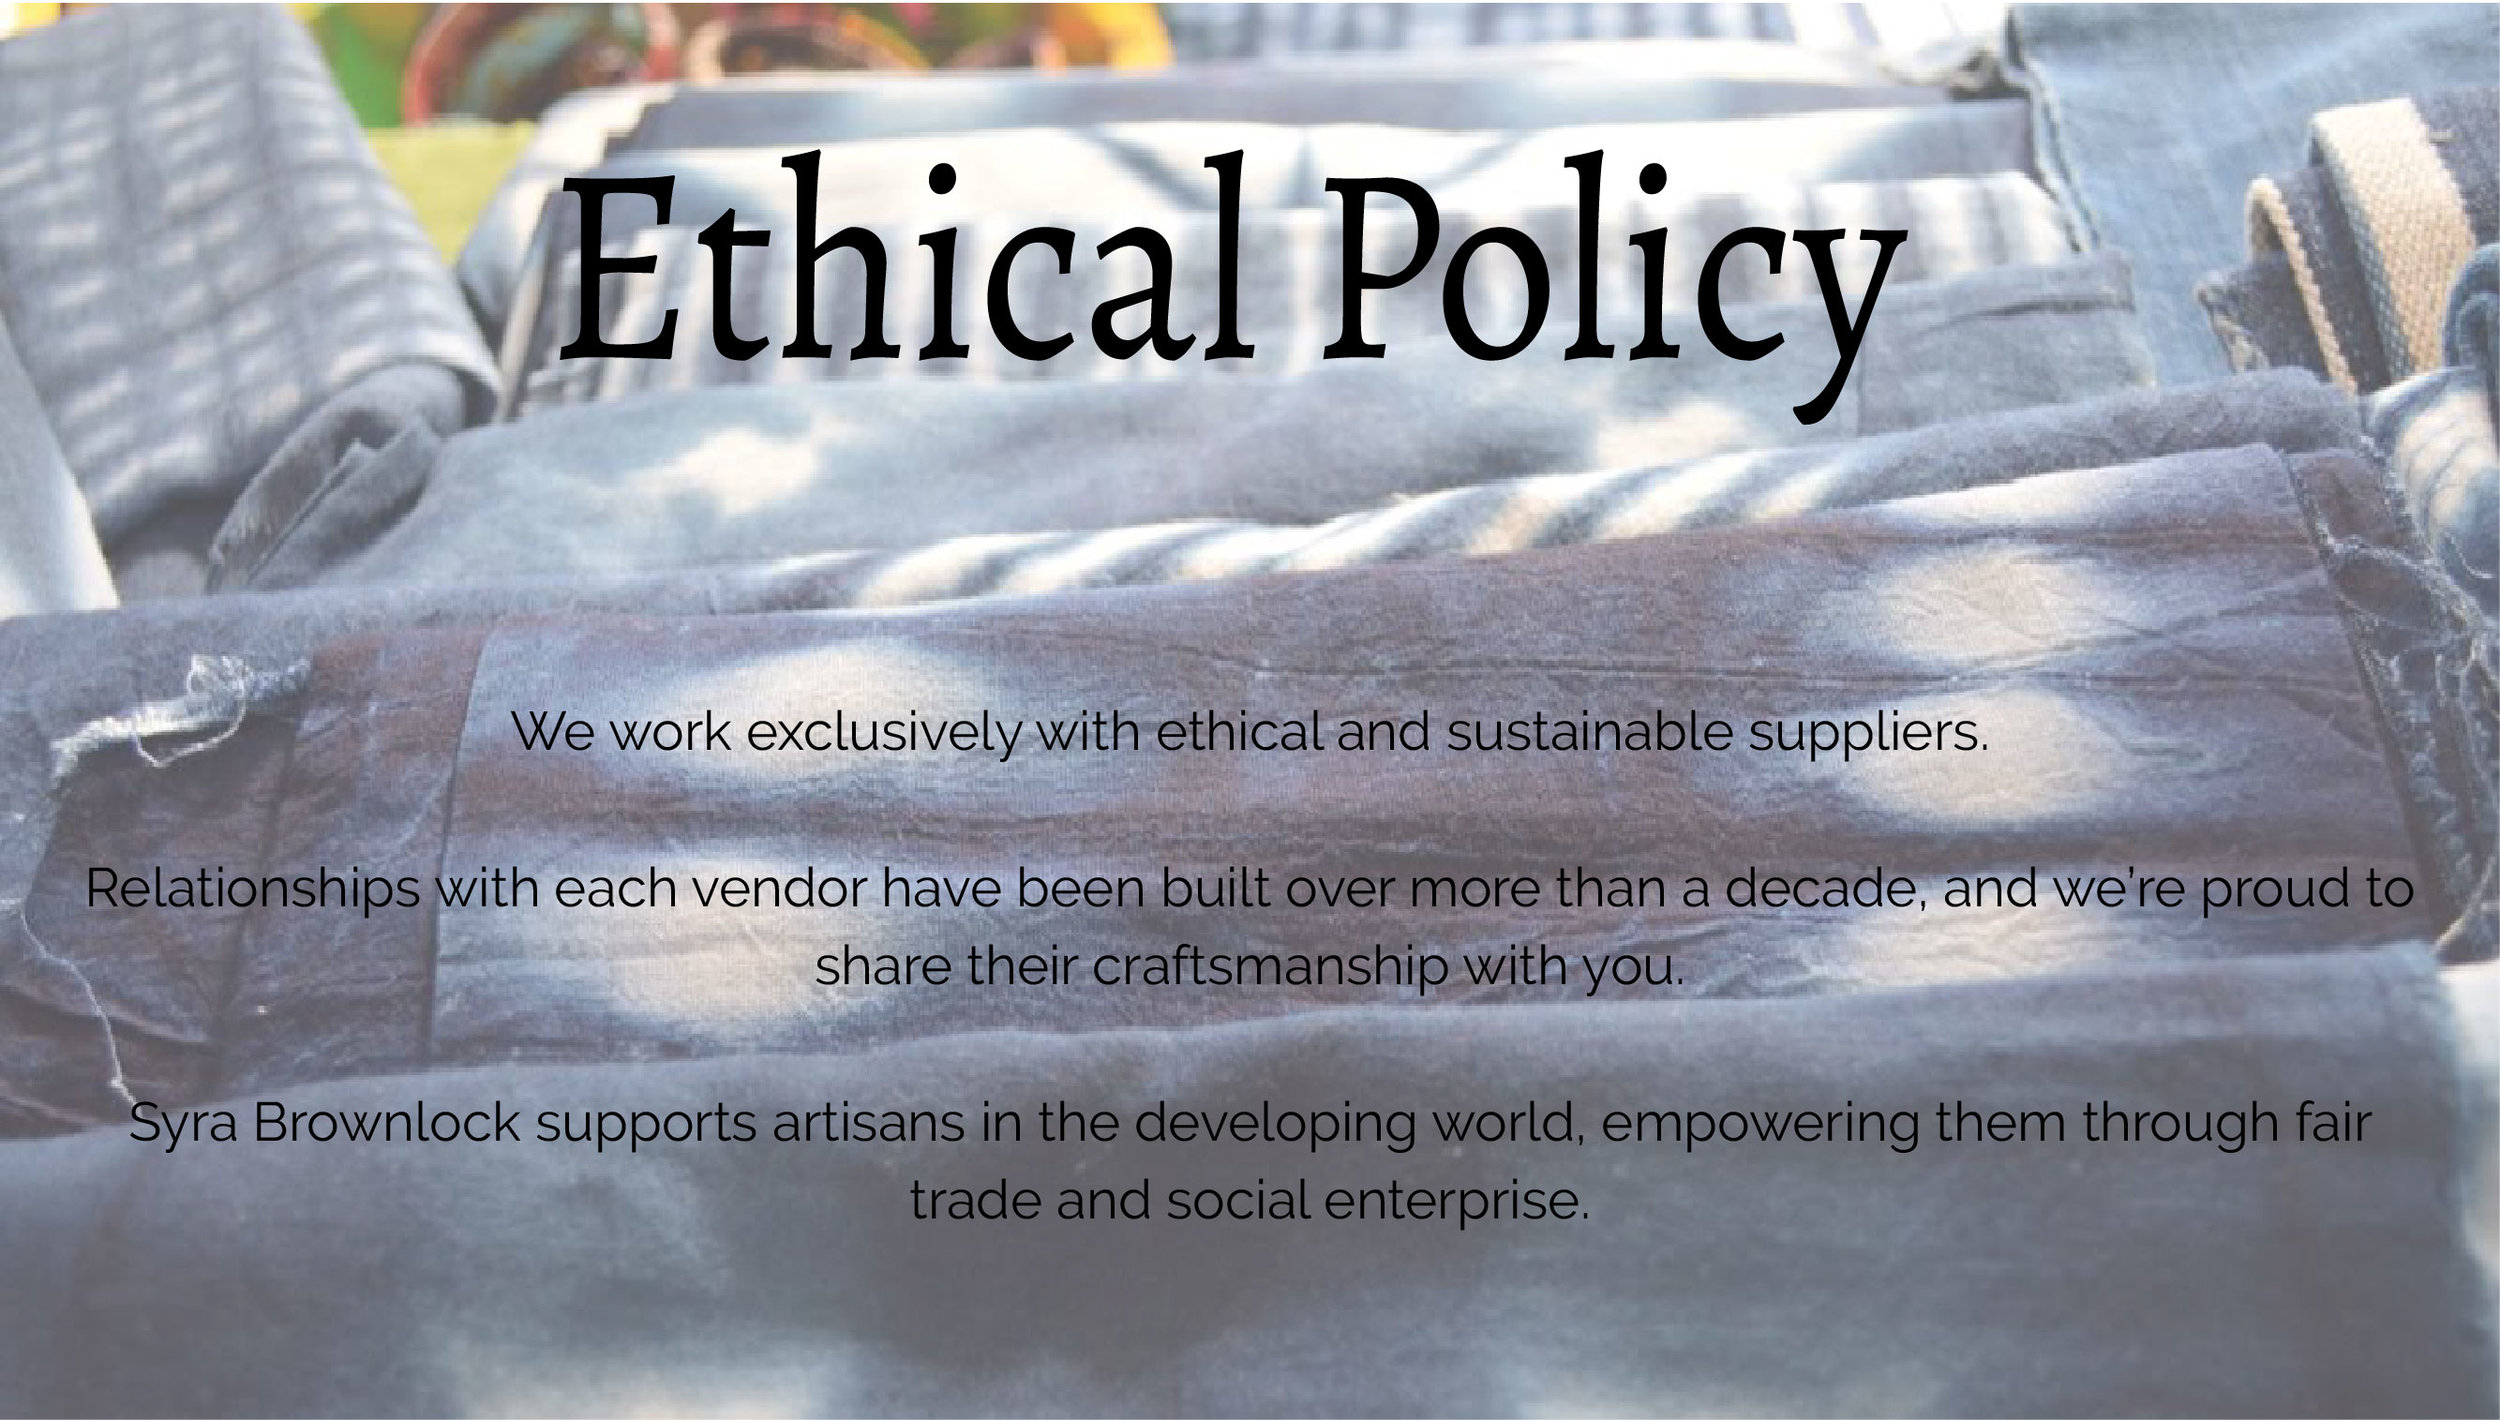 Ethical Policy.jpg